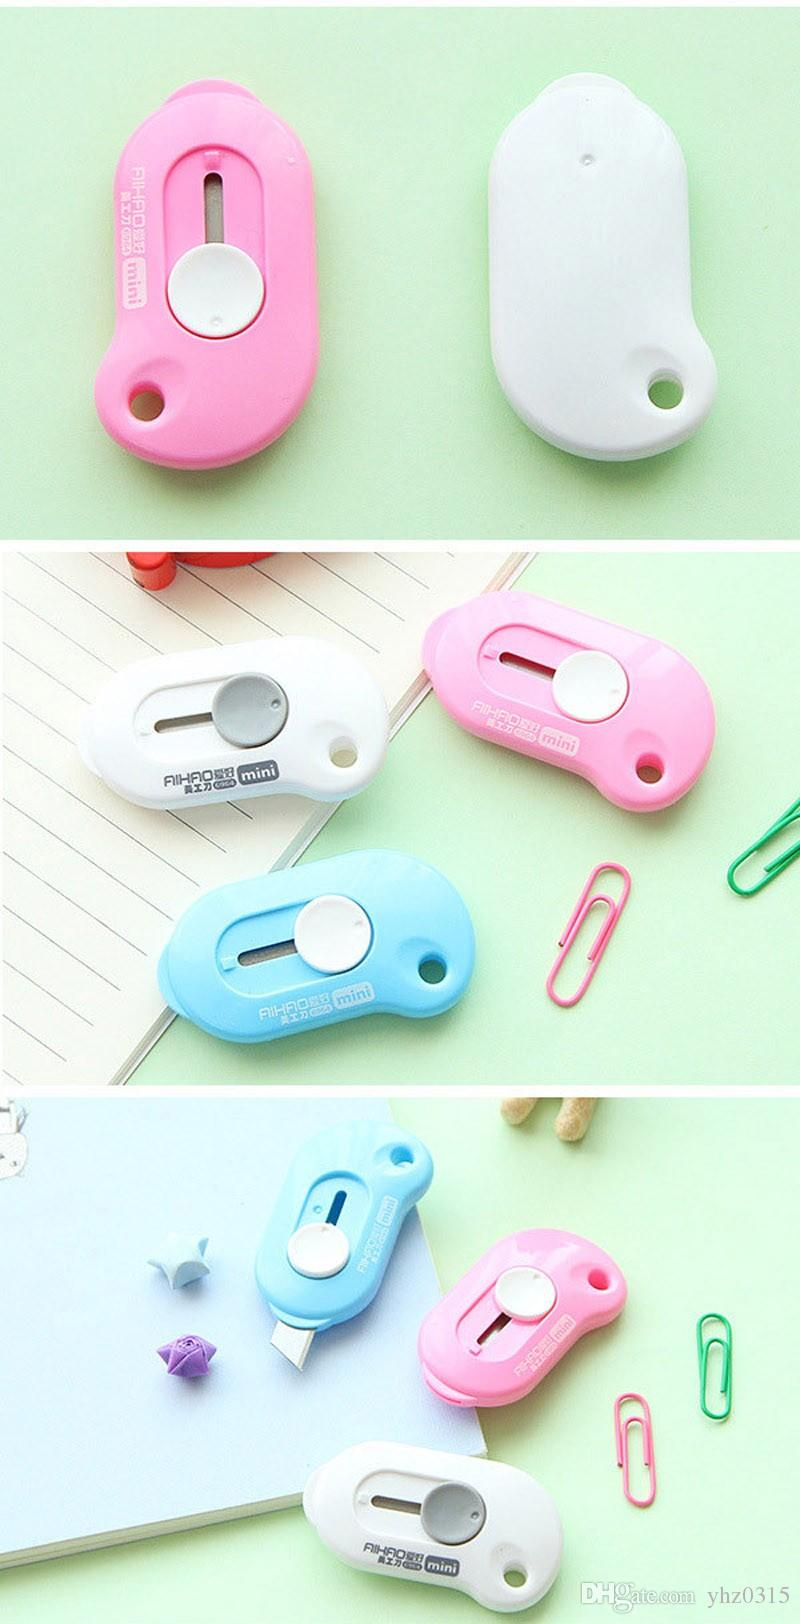 Office Stationery Small Mini Utility Knife Escolar Paper Cutter Cutting Paper Razor Blade School Supply Color Random